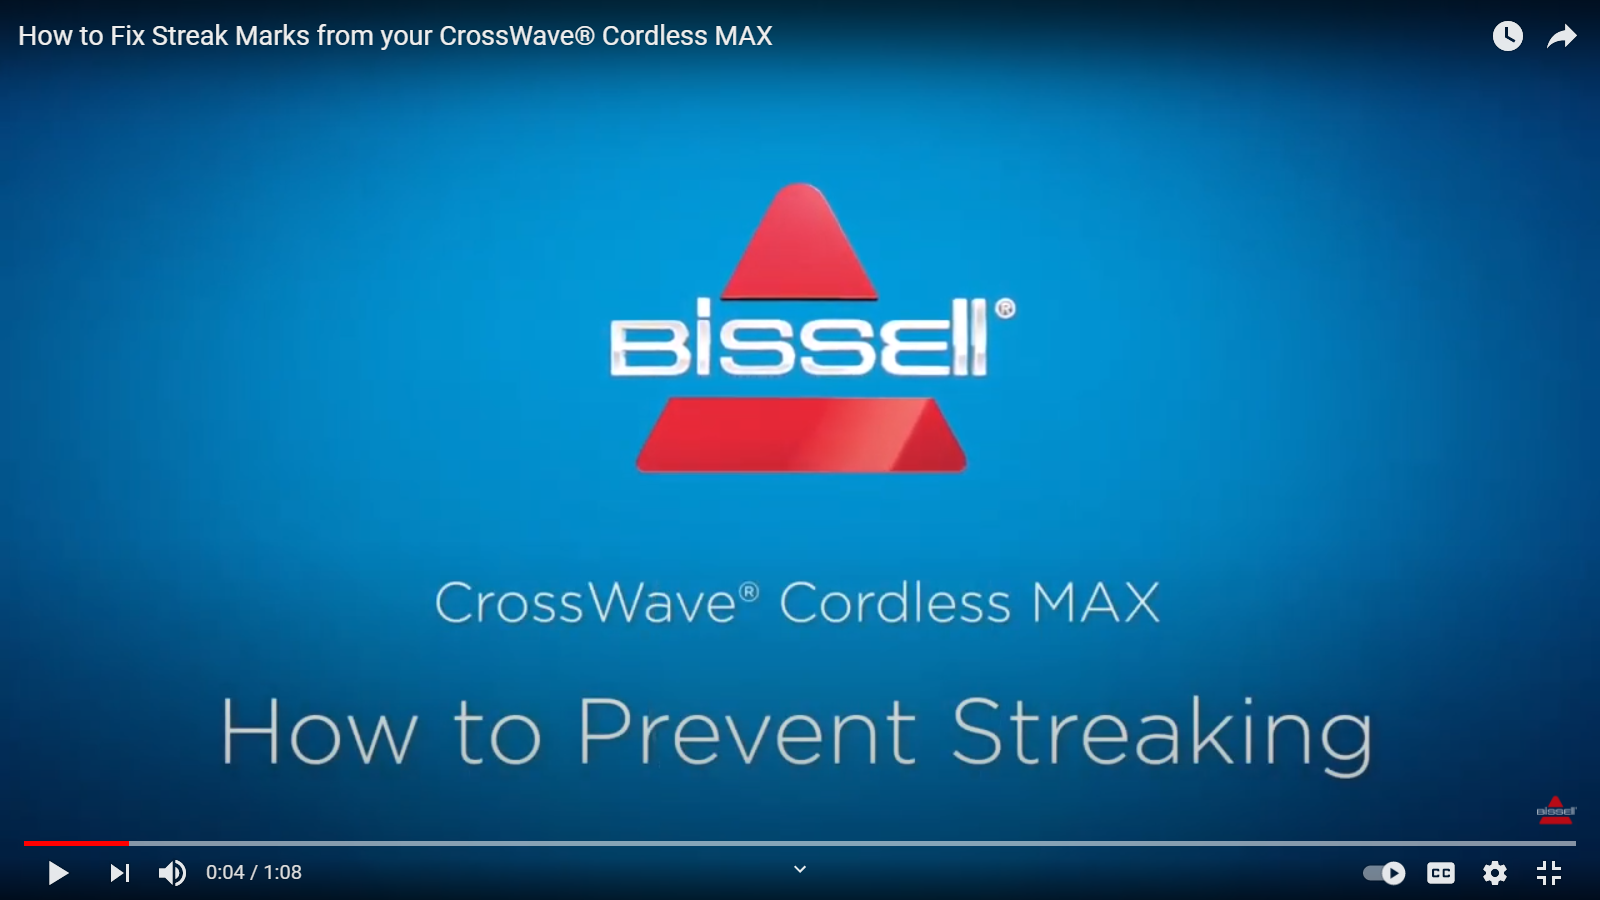 What to do if your CrossWave Cordless Max leaves streak marks on the floor